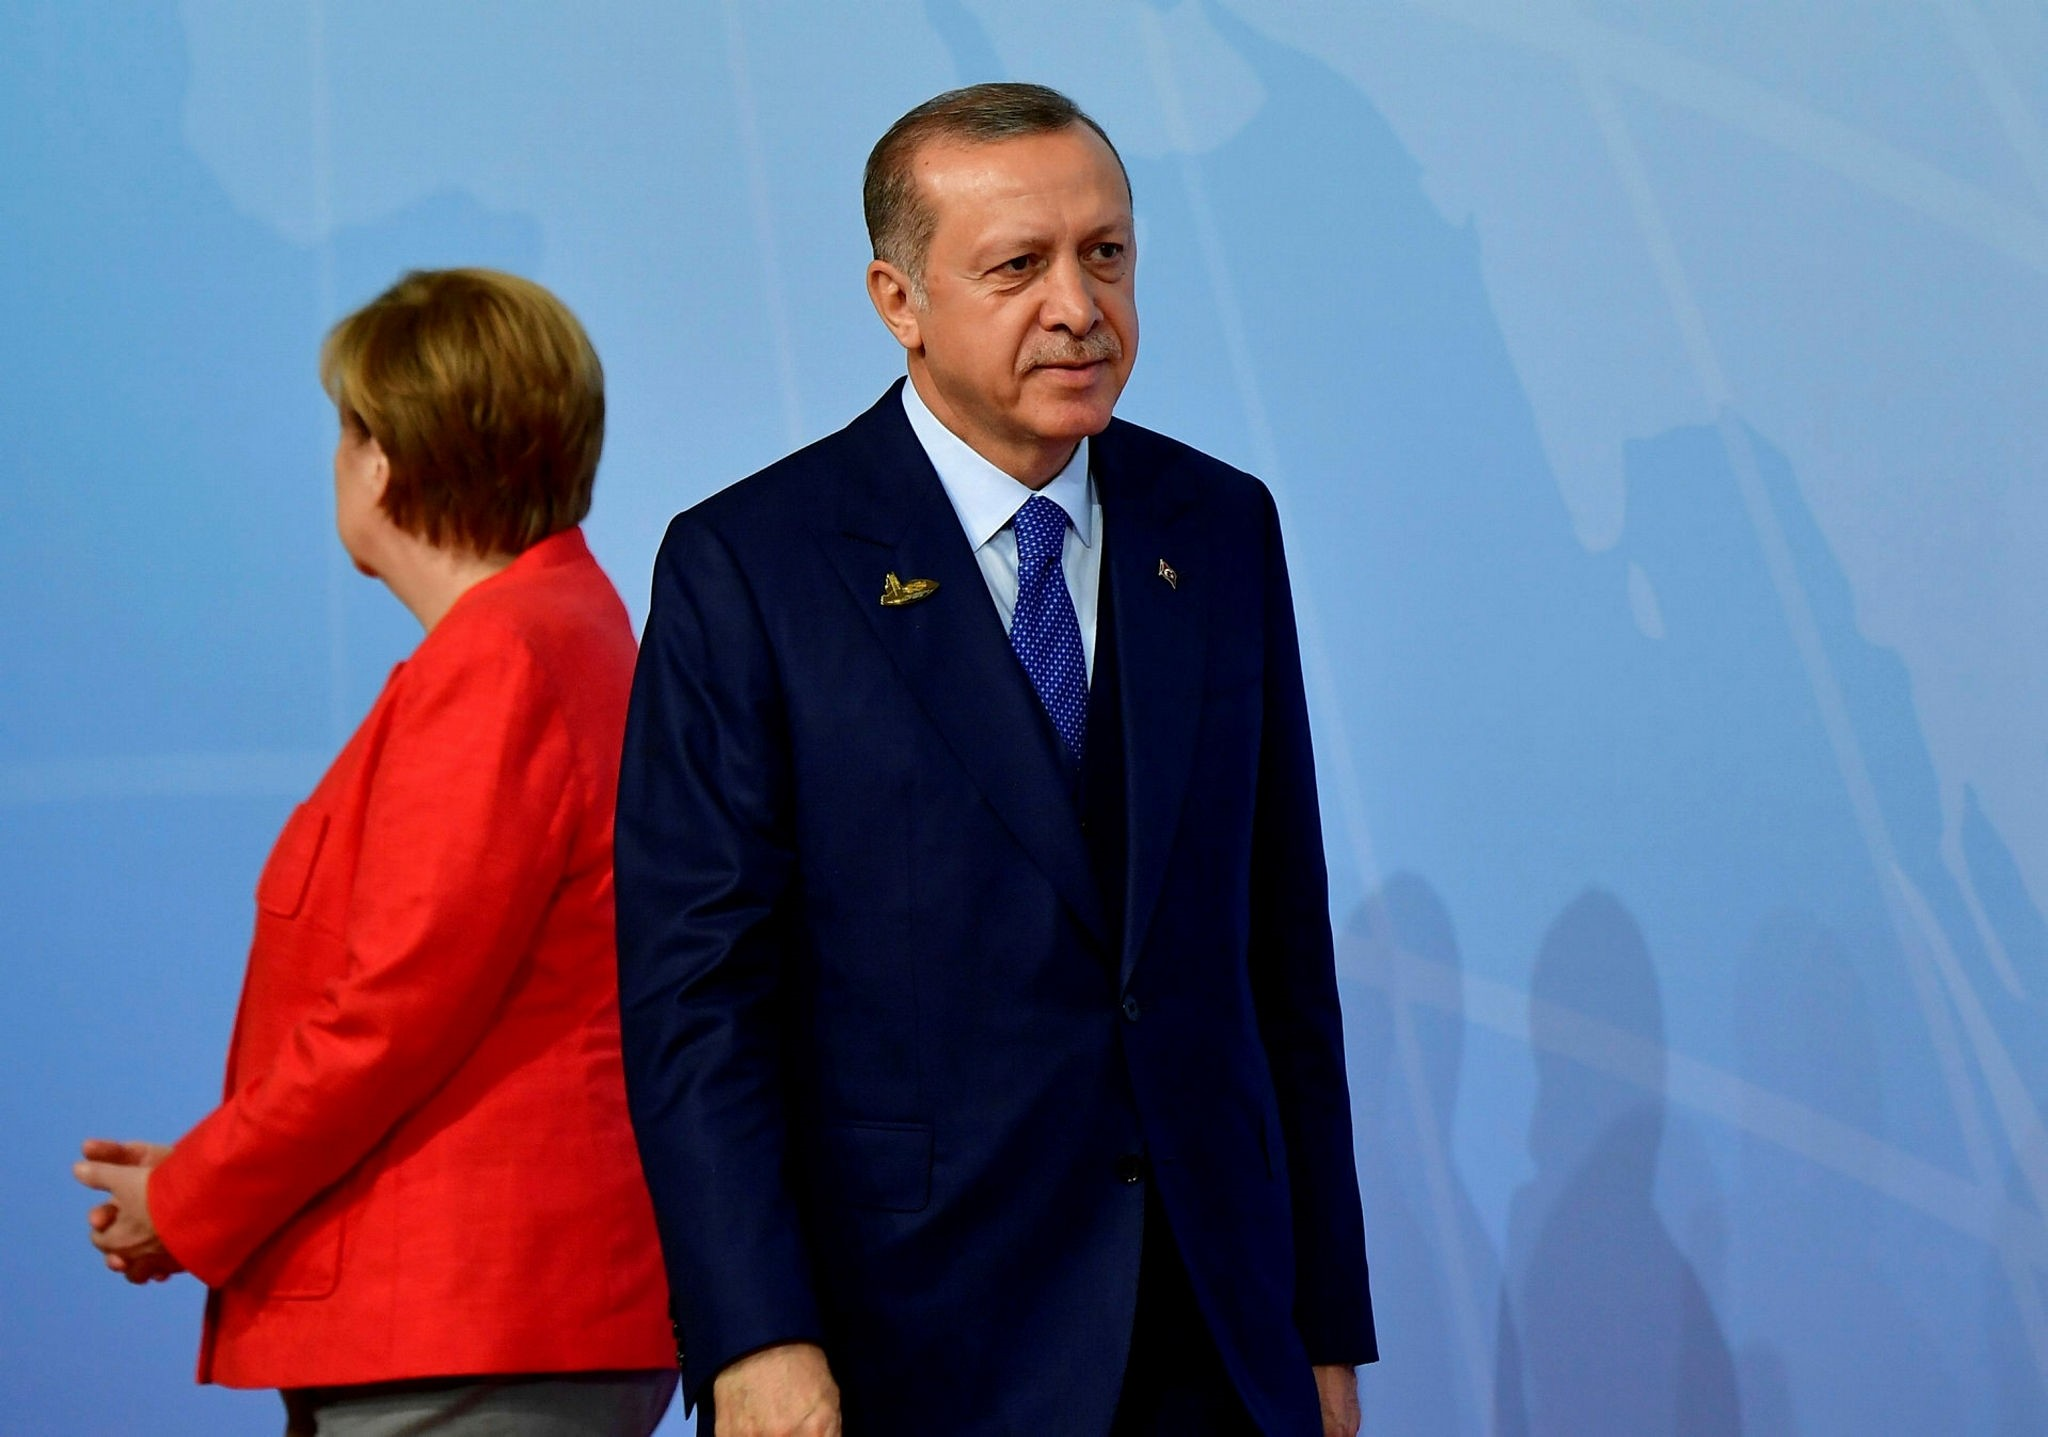 German Chancellor Angela Merkel (L) stands by President Recep Tayyip Erdou011fan as he arrives to attend the G20 Summit in Hamburg, Germany, July 7.